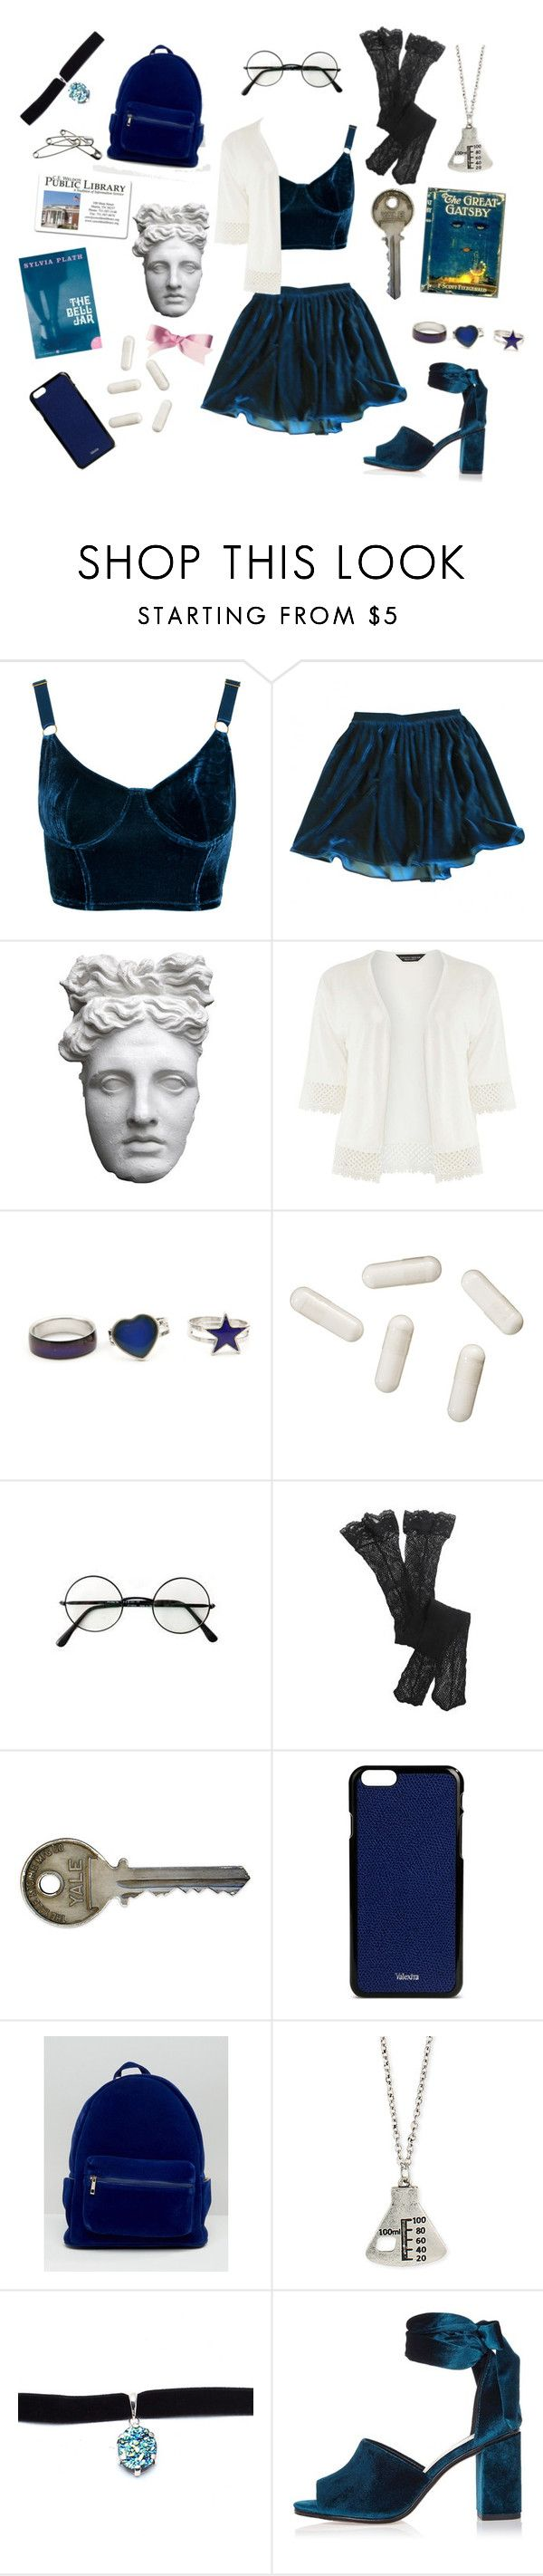 """she wore blue velvet..."" by lambvomit ❤ liked on Polyvore featuring Wet Seal, American Apparel, Gatsby, Romanelli, Dorothy Perkins, Hum Nutrition, Aerie, Valextra, Daisy Street and SAM"